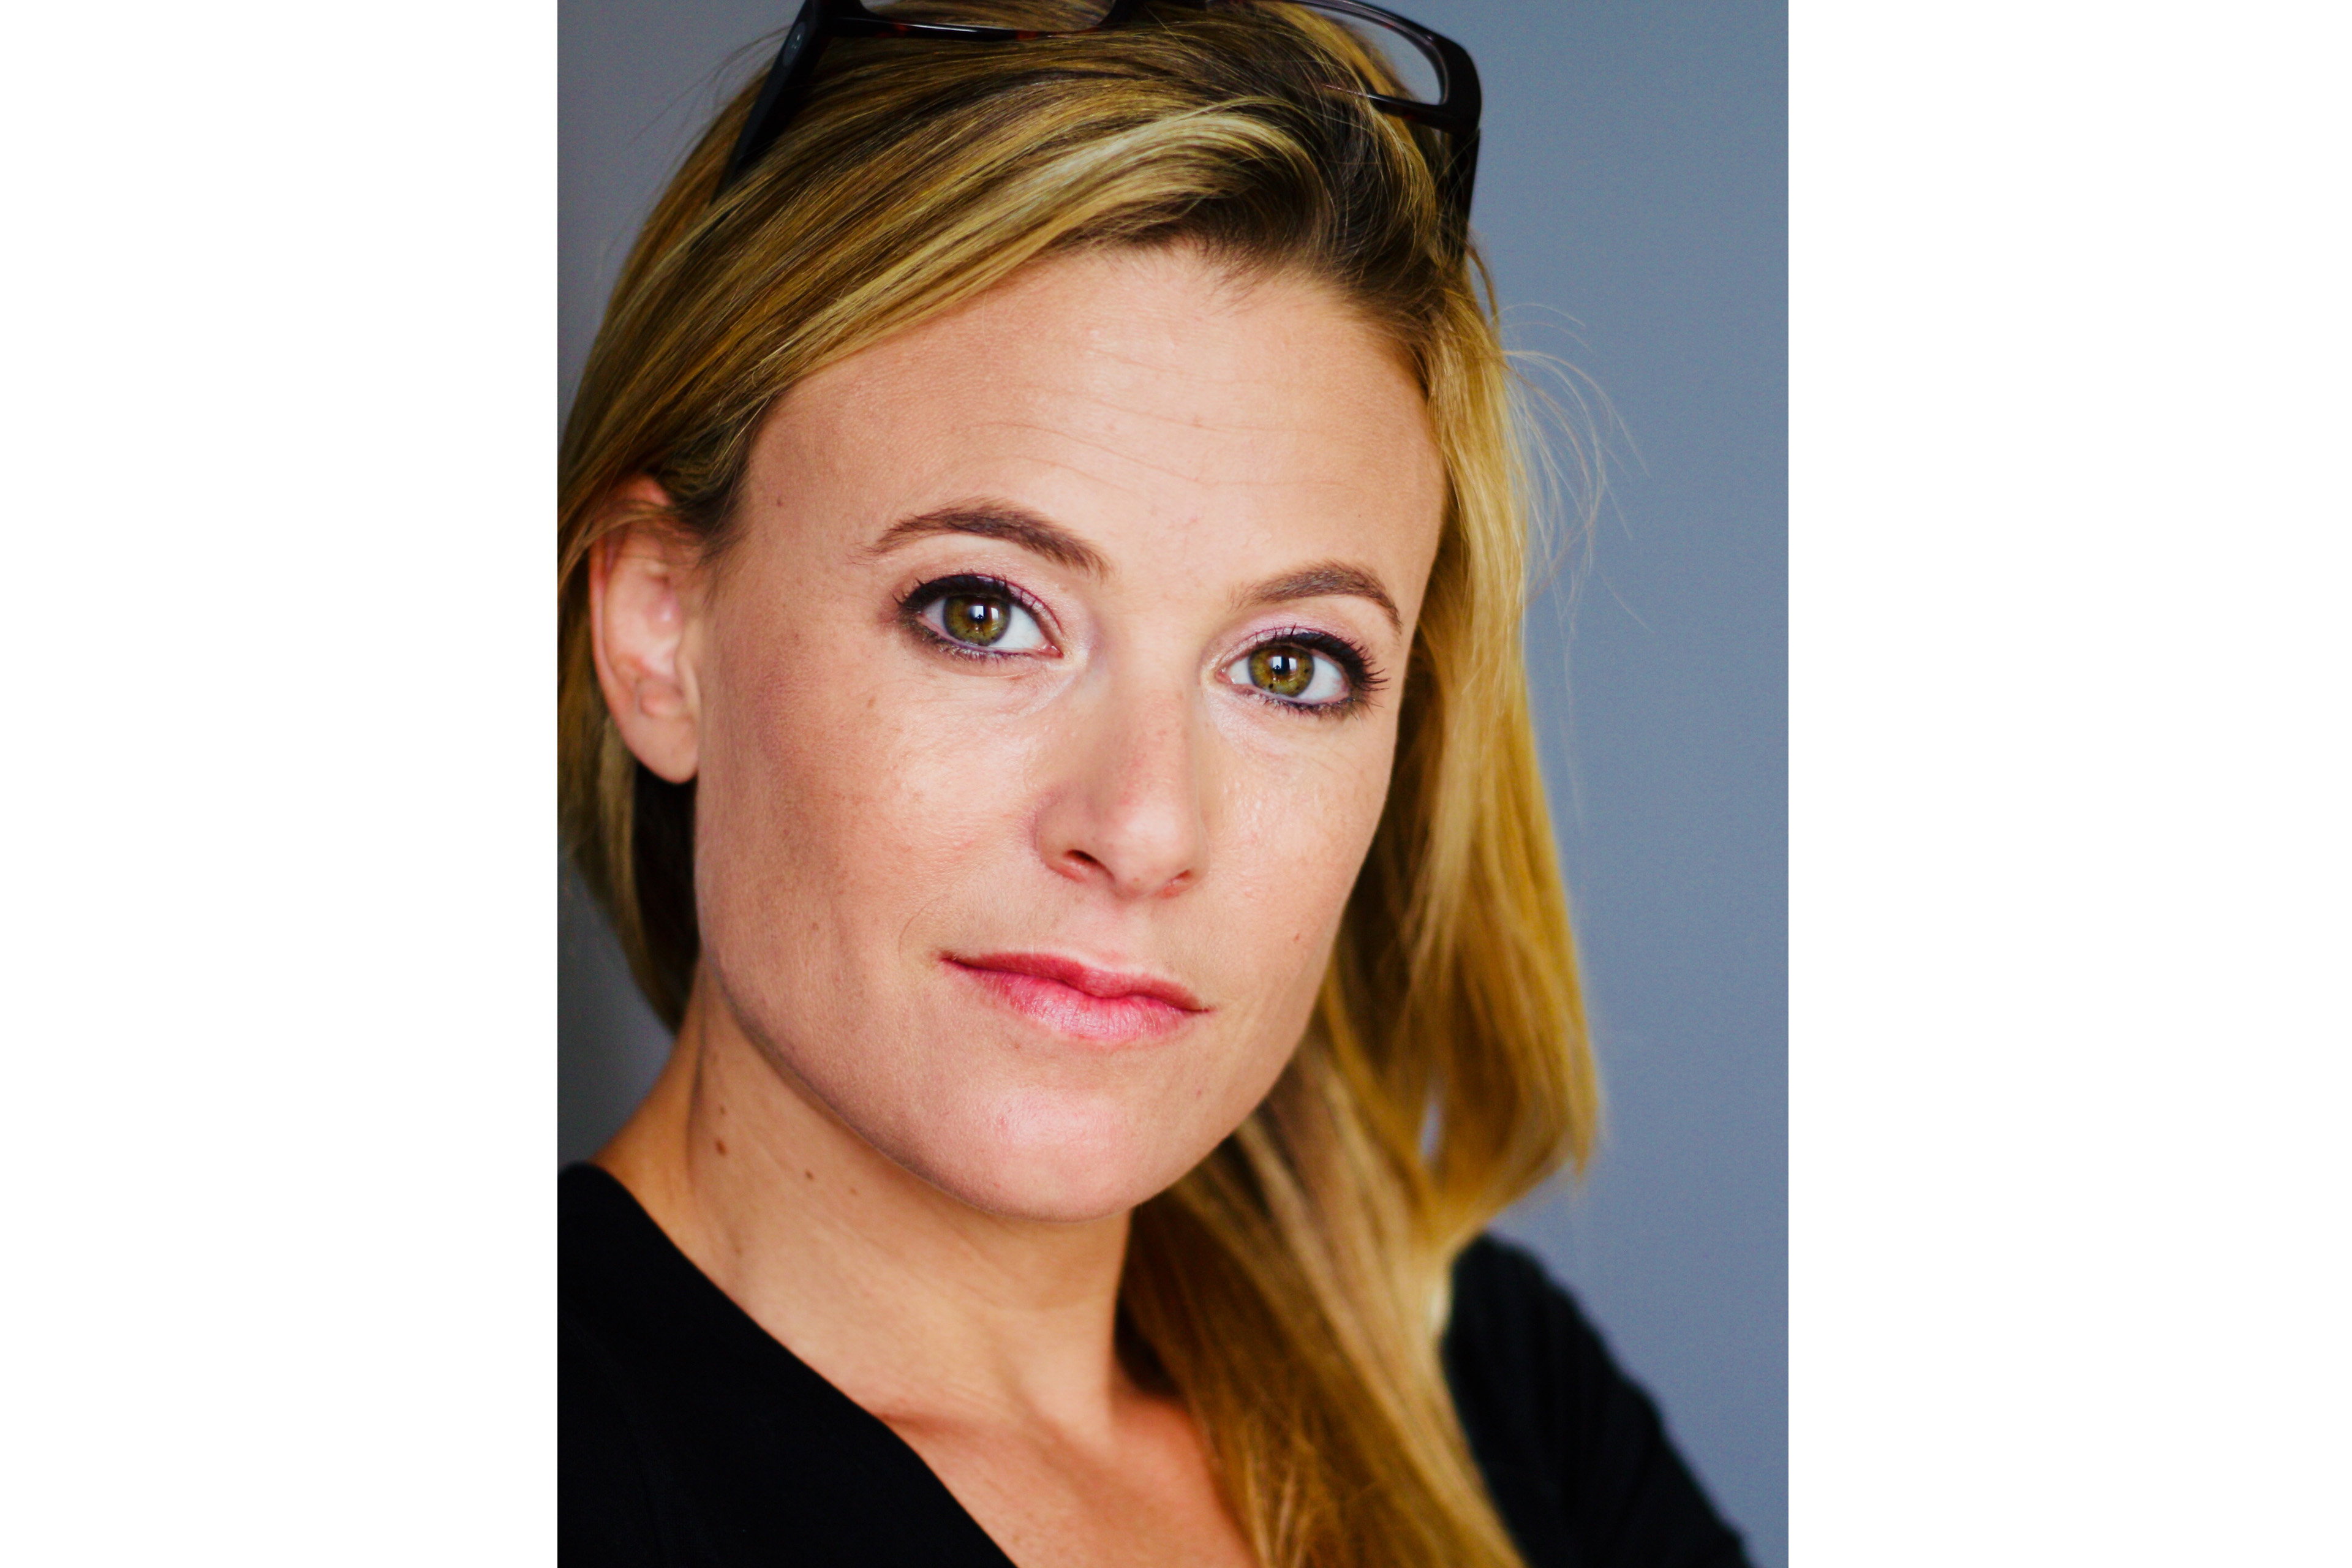 A photographic portrait of Tali Sharot